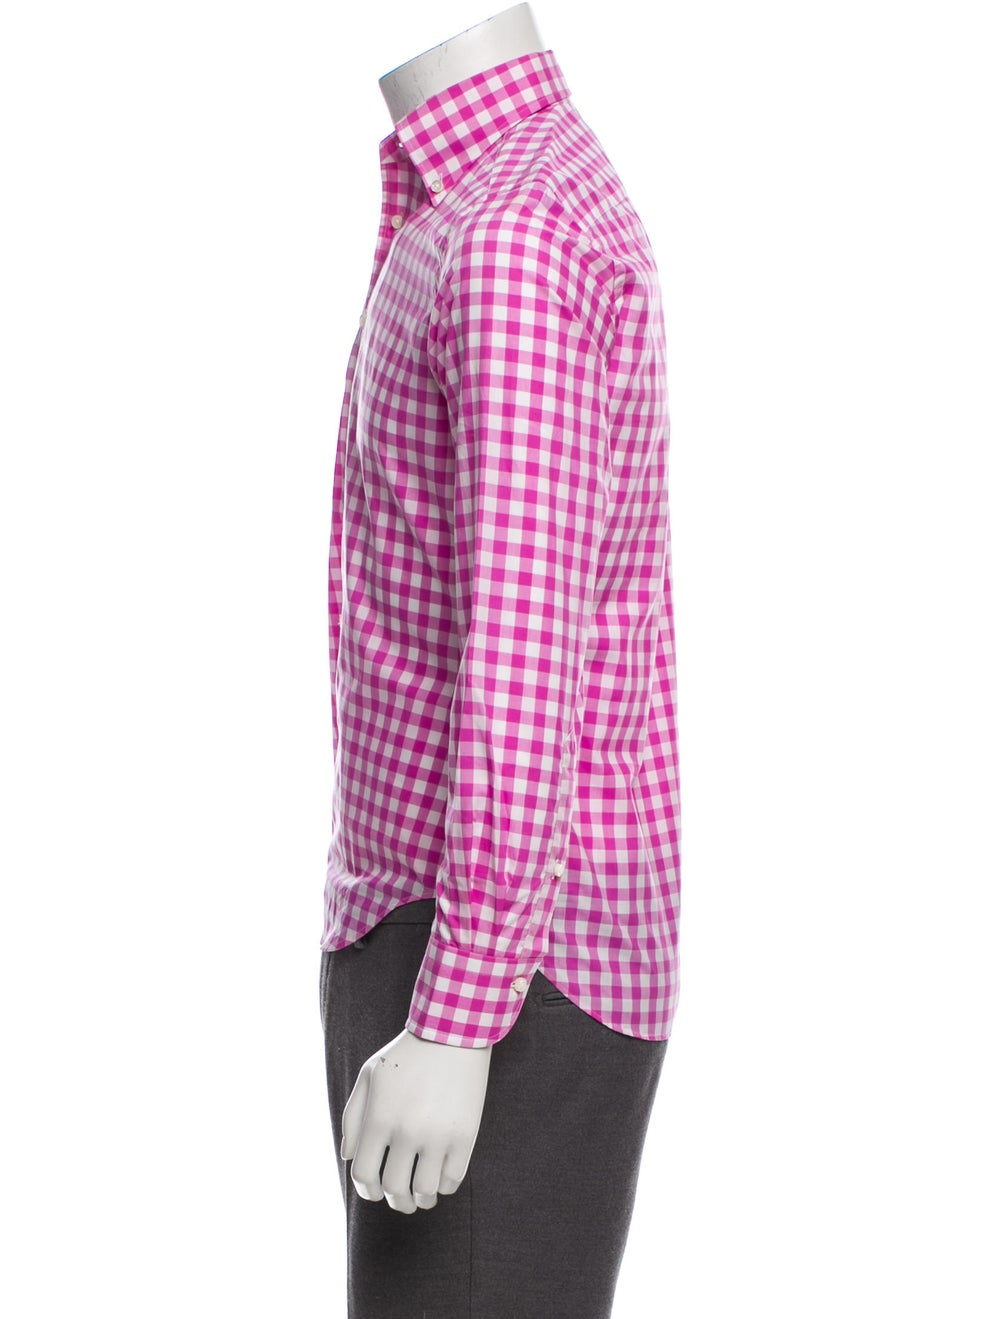 Daniel Cremieux Gingham Dress Shirt w/ Tags pink - image 2